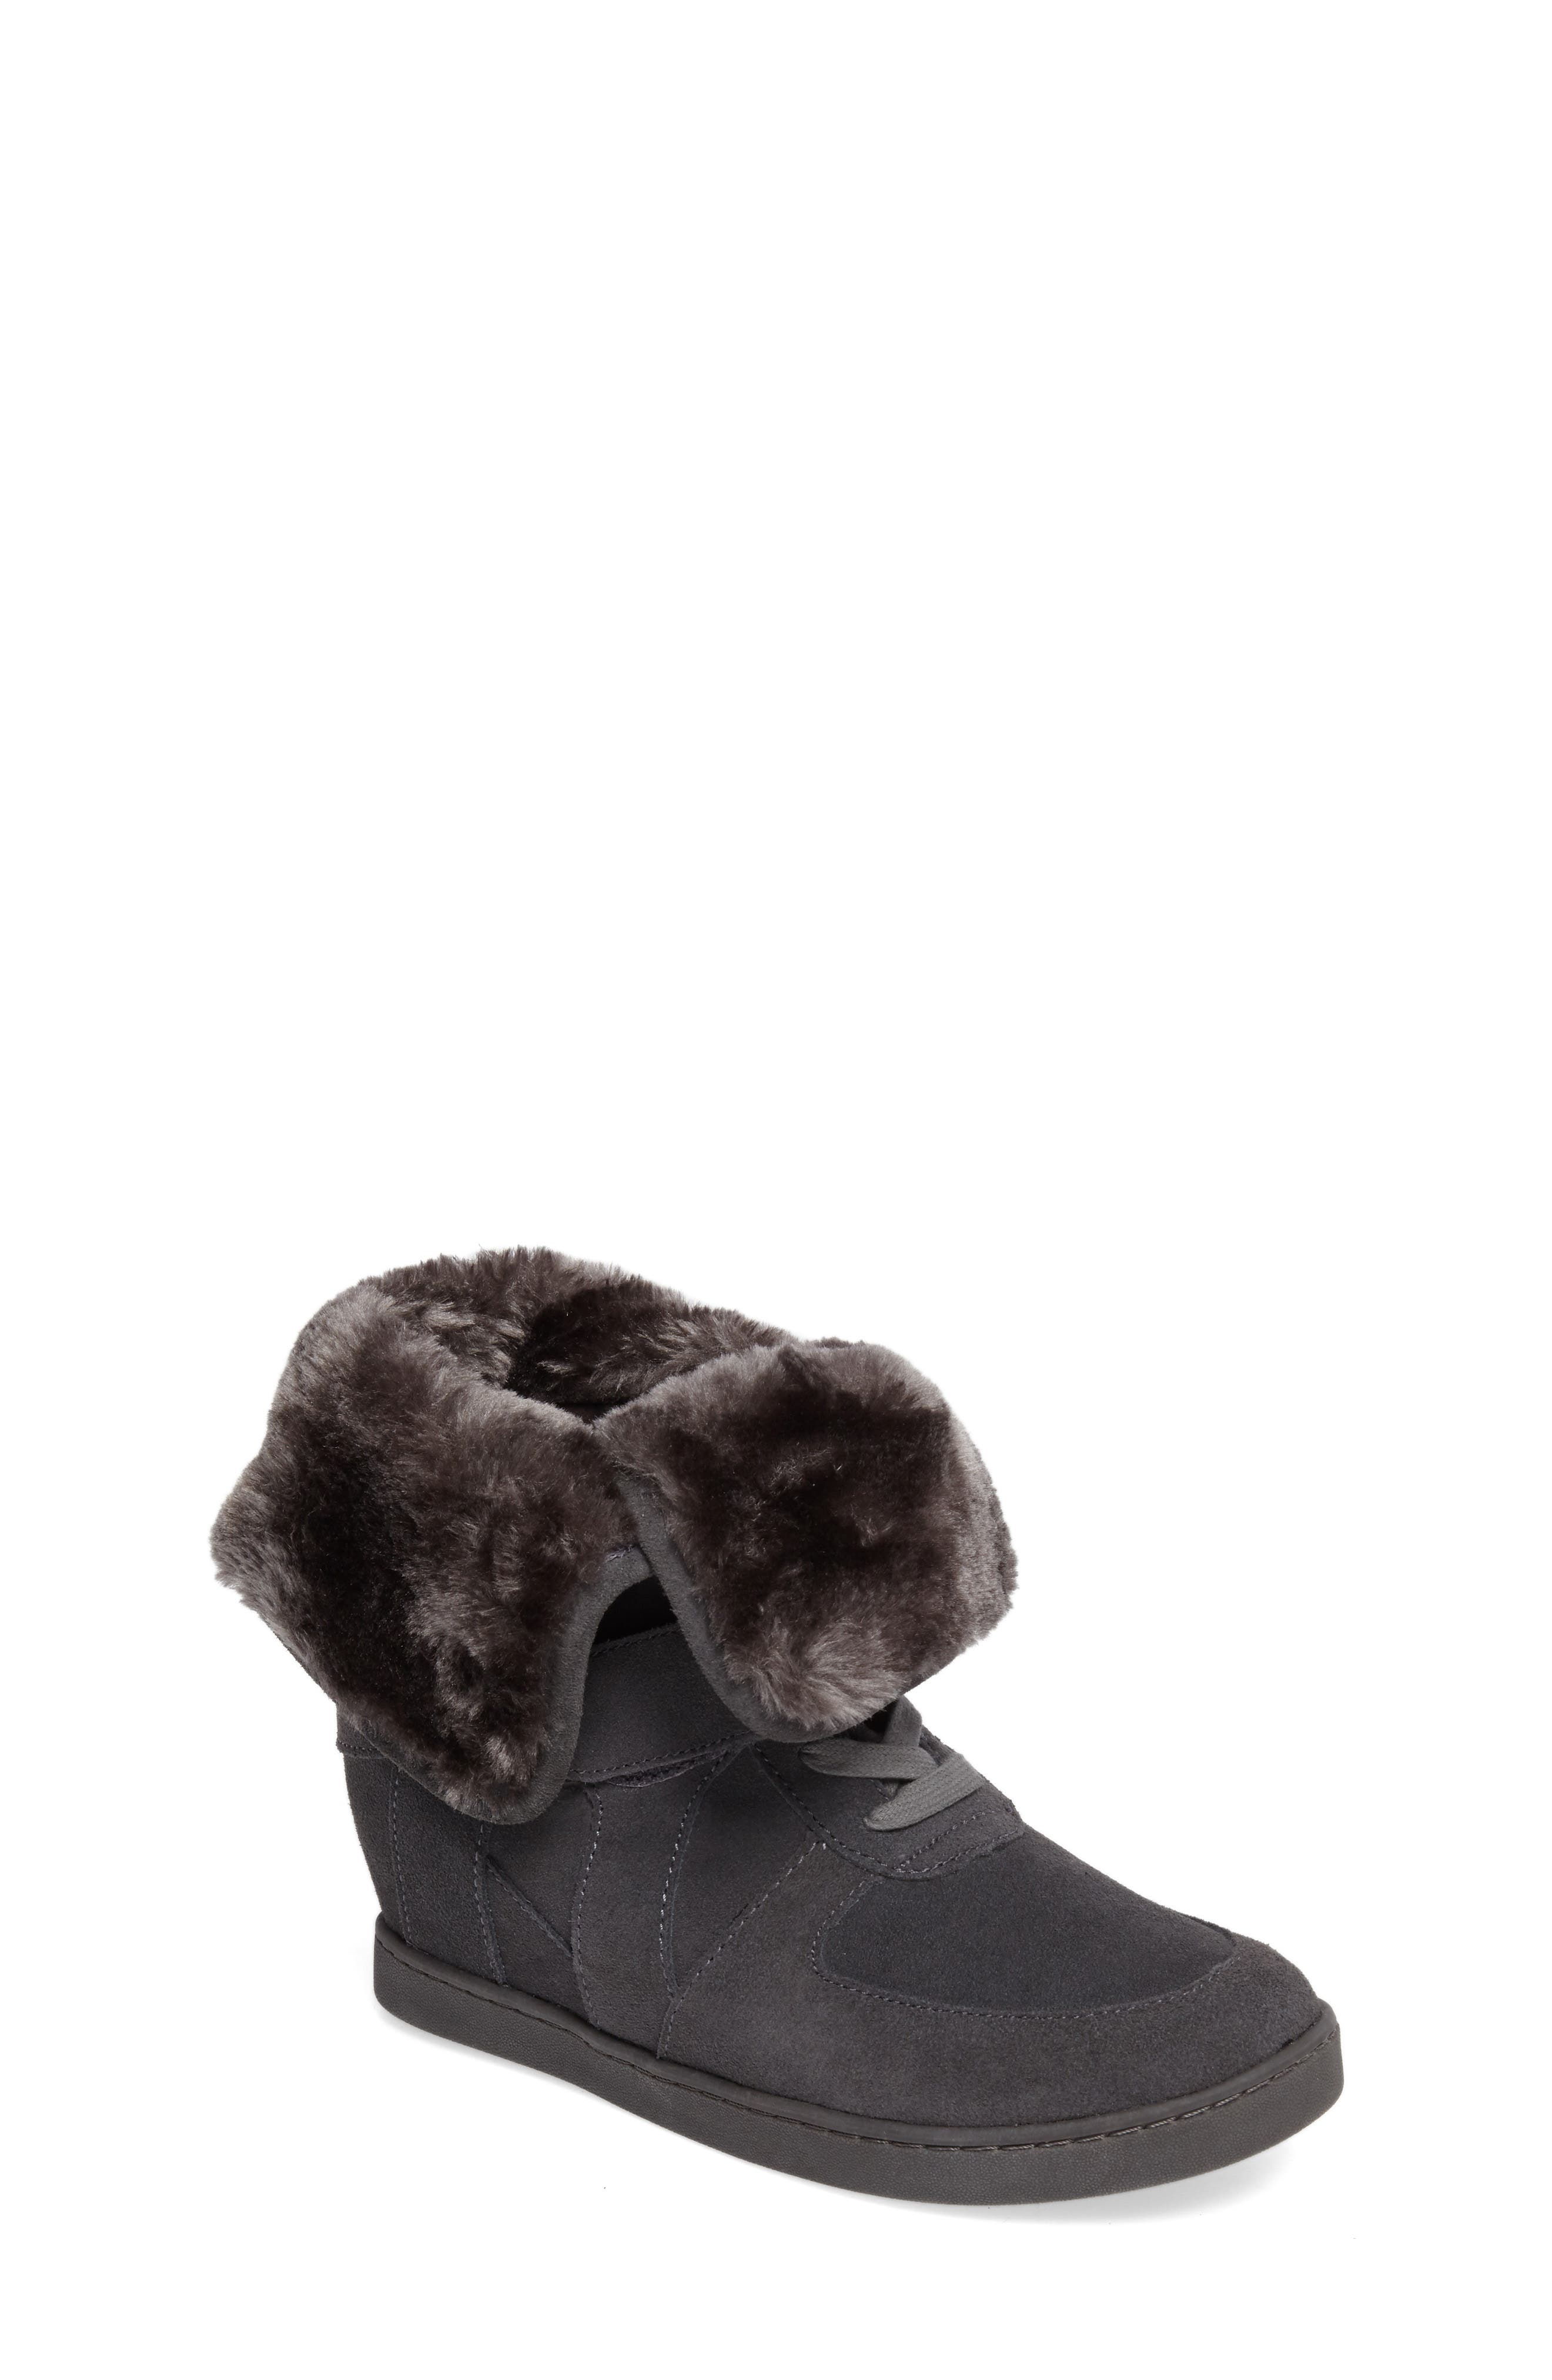 Ash Boogie Beaver Faux Fur Cuffed Bootie (Toddler, Little Kid & Big Kid)